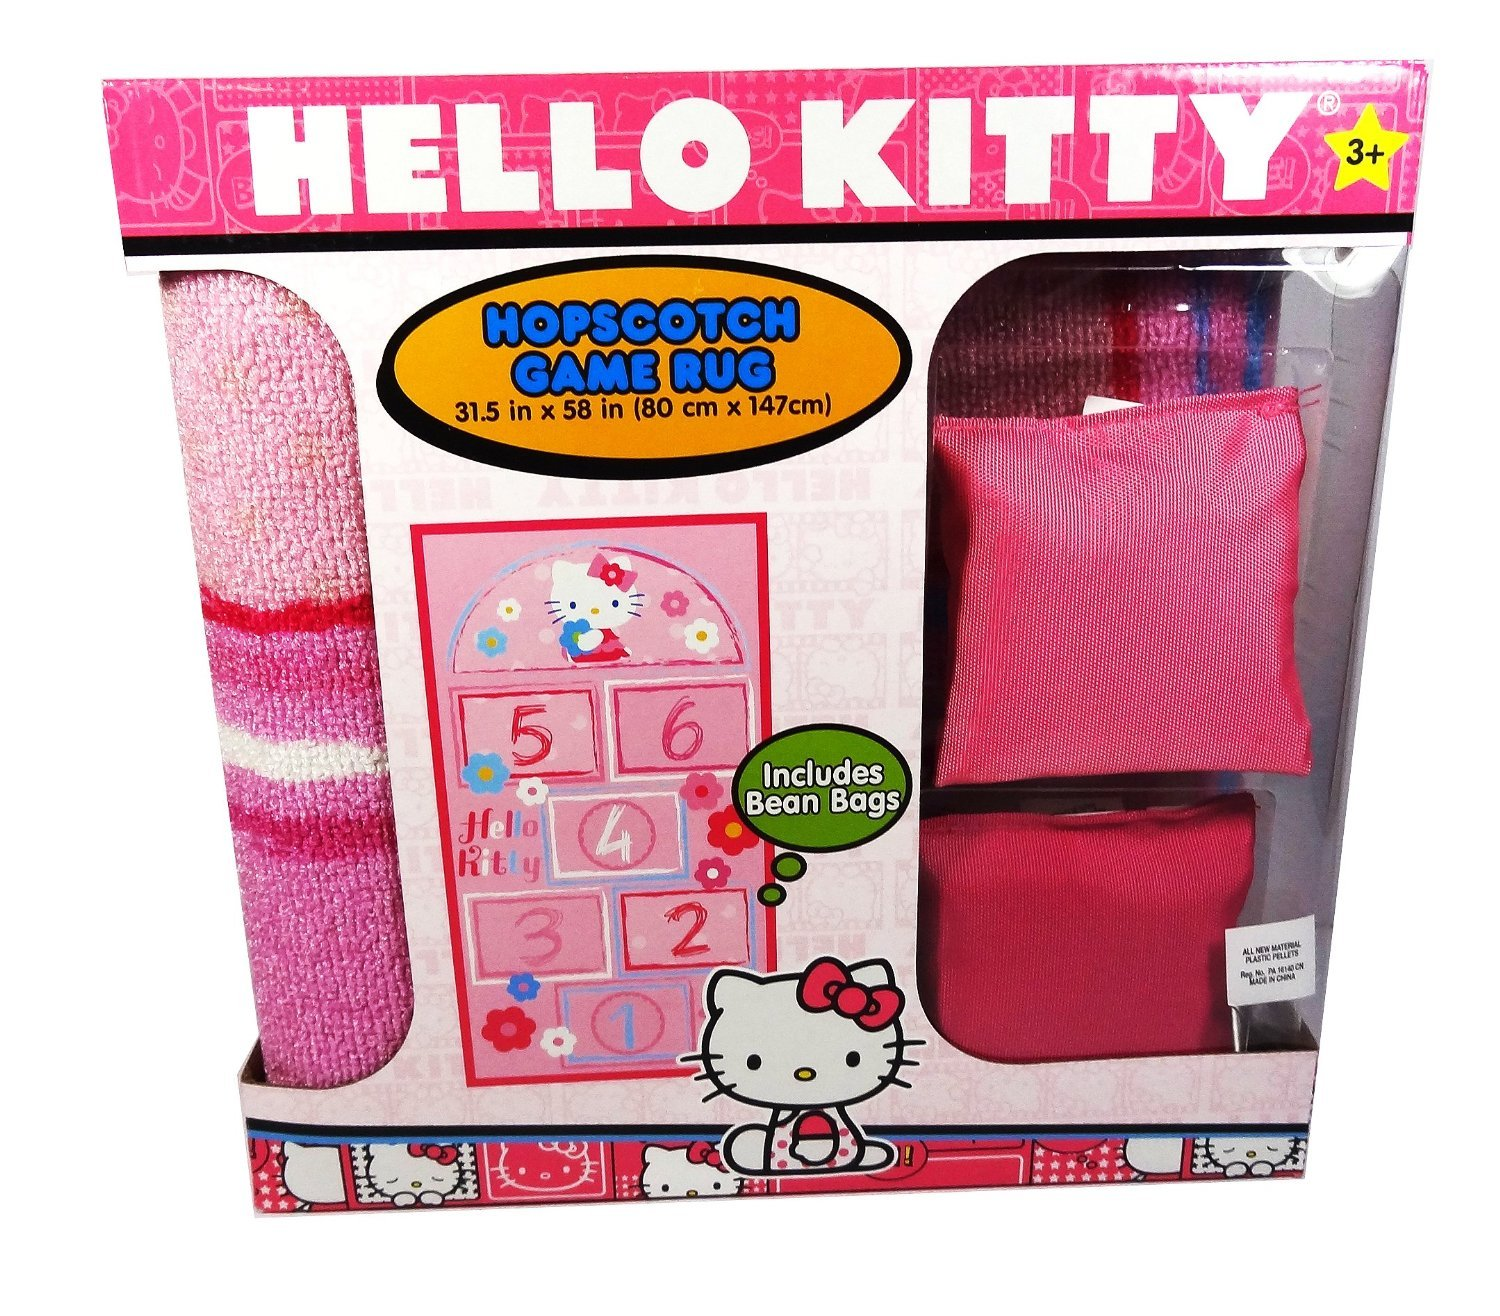 Hello Kitty Hopscotch Game Rug Includes Bean Bags, 31.5'' x 58''